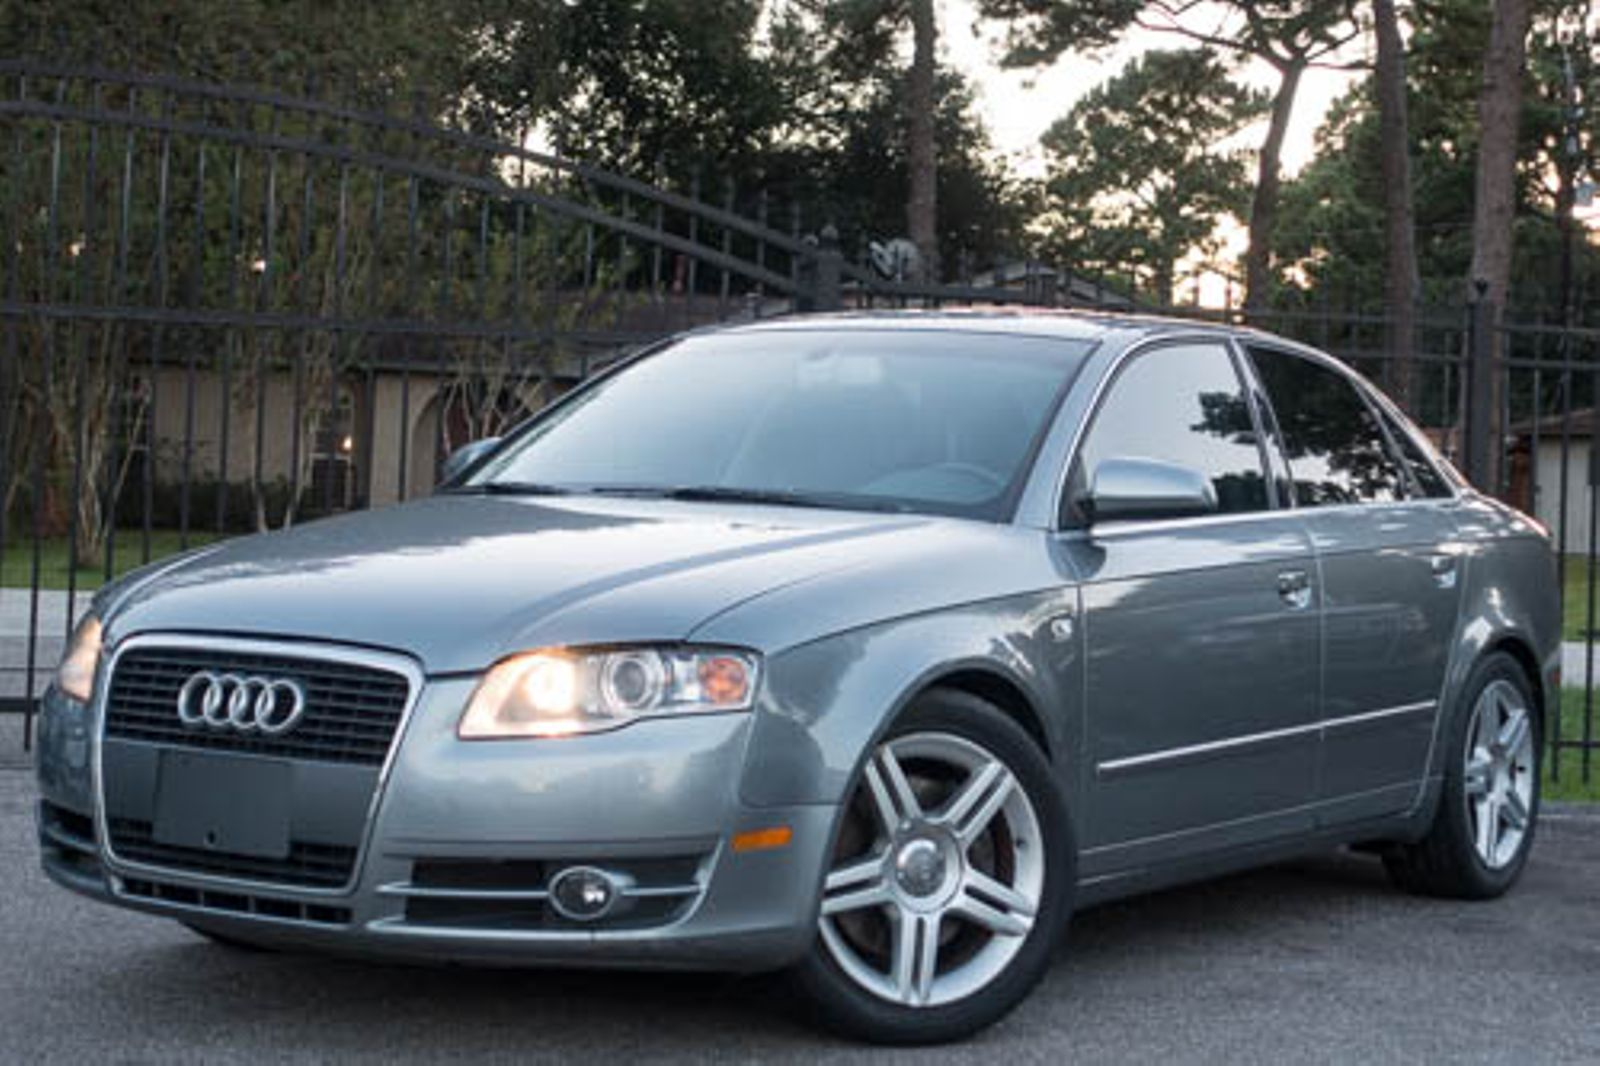 2007 Audi A4 20t Texas Euro 2 Motors 2010 Battery Location In